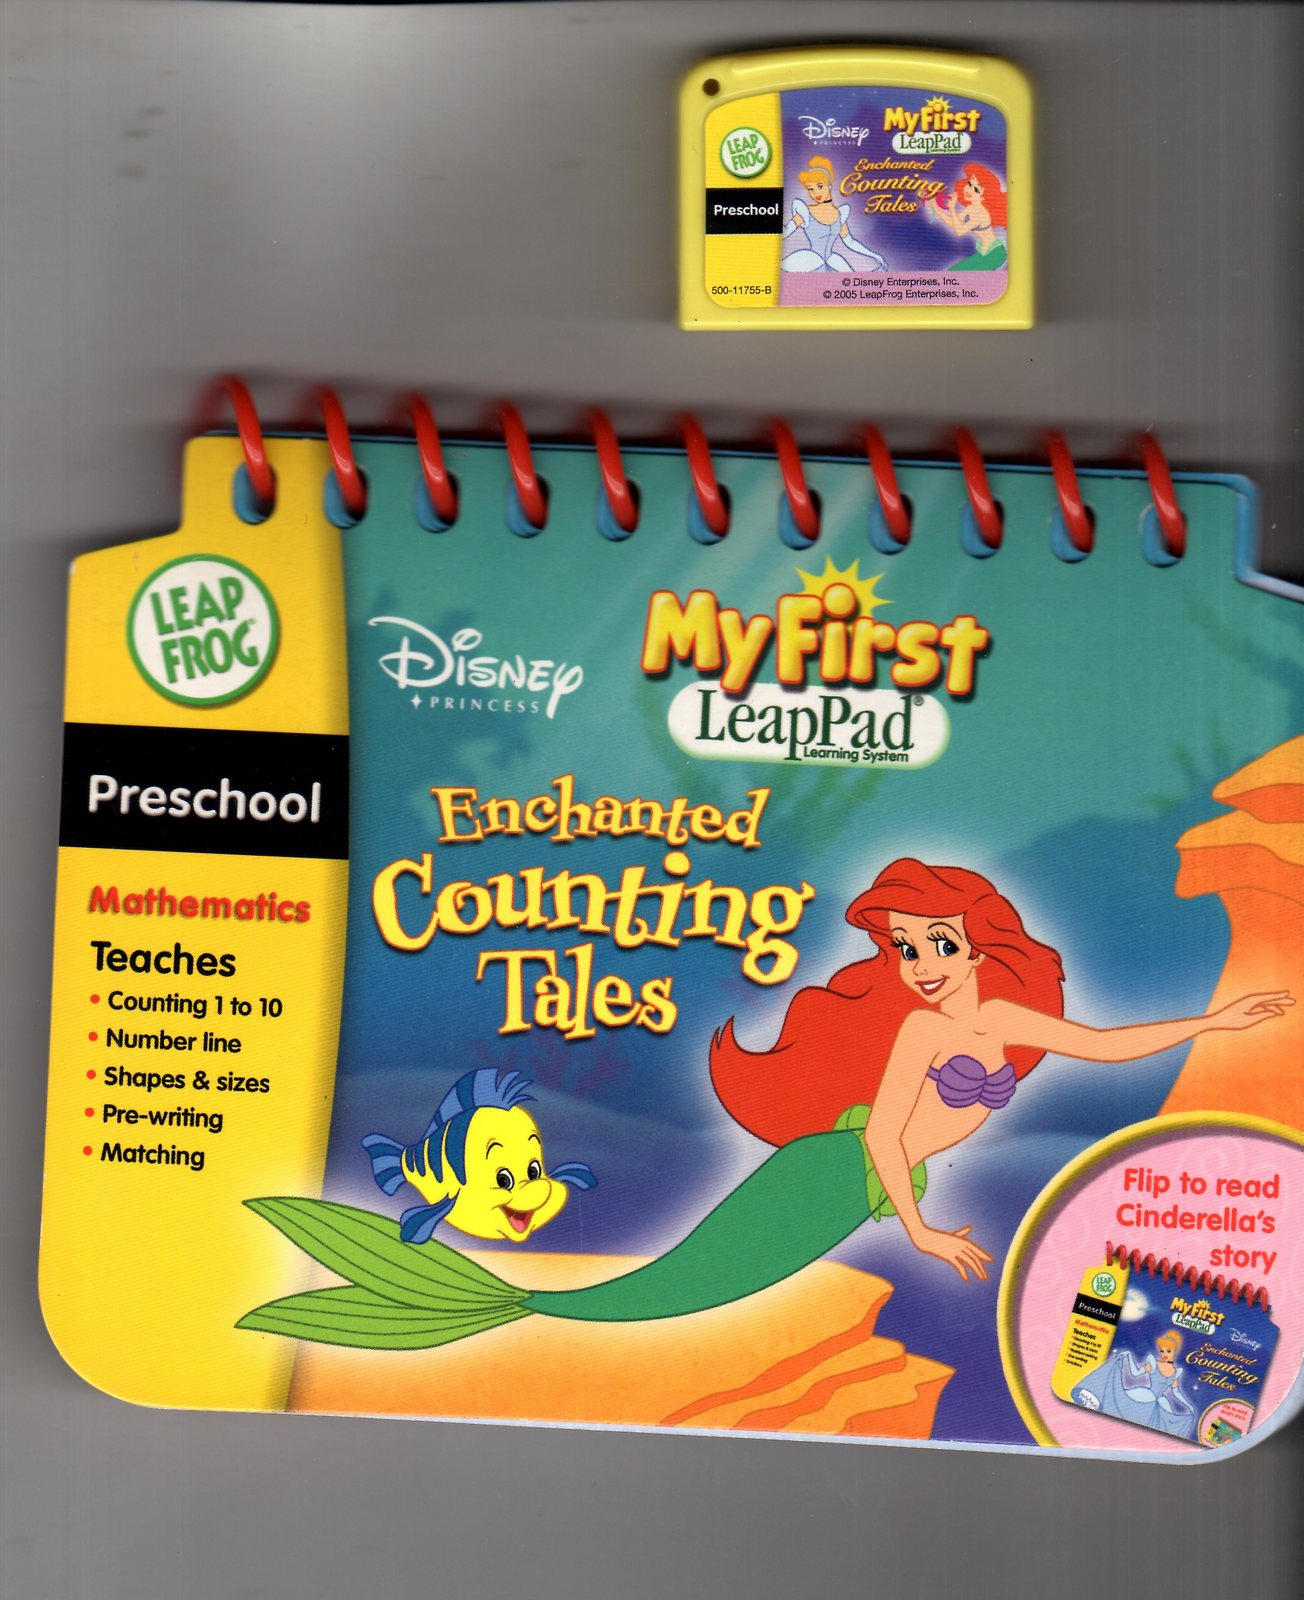 Leap Frog - My First LeapPad -Disney Enchanted Counting Tales